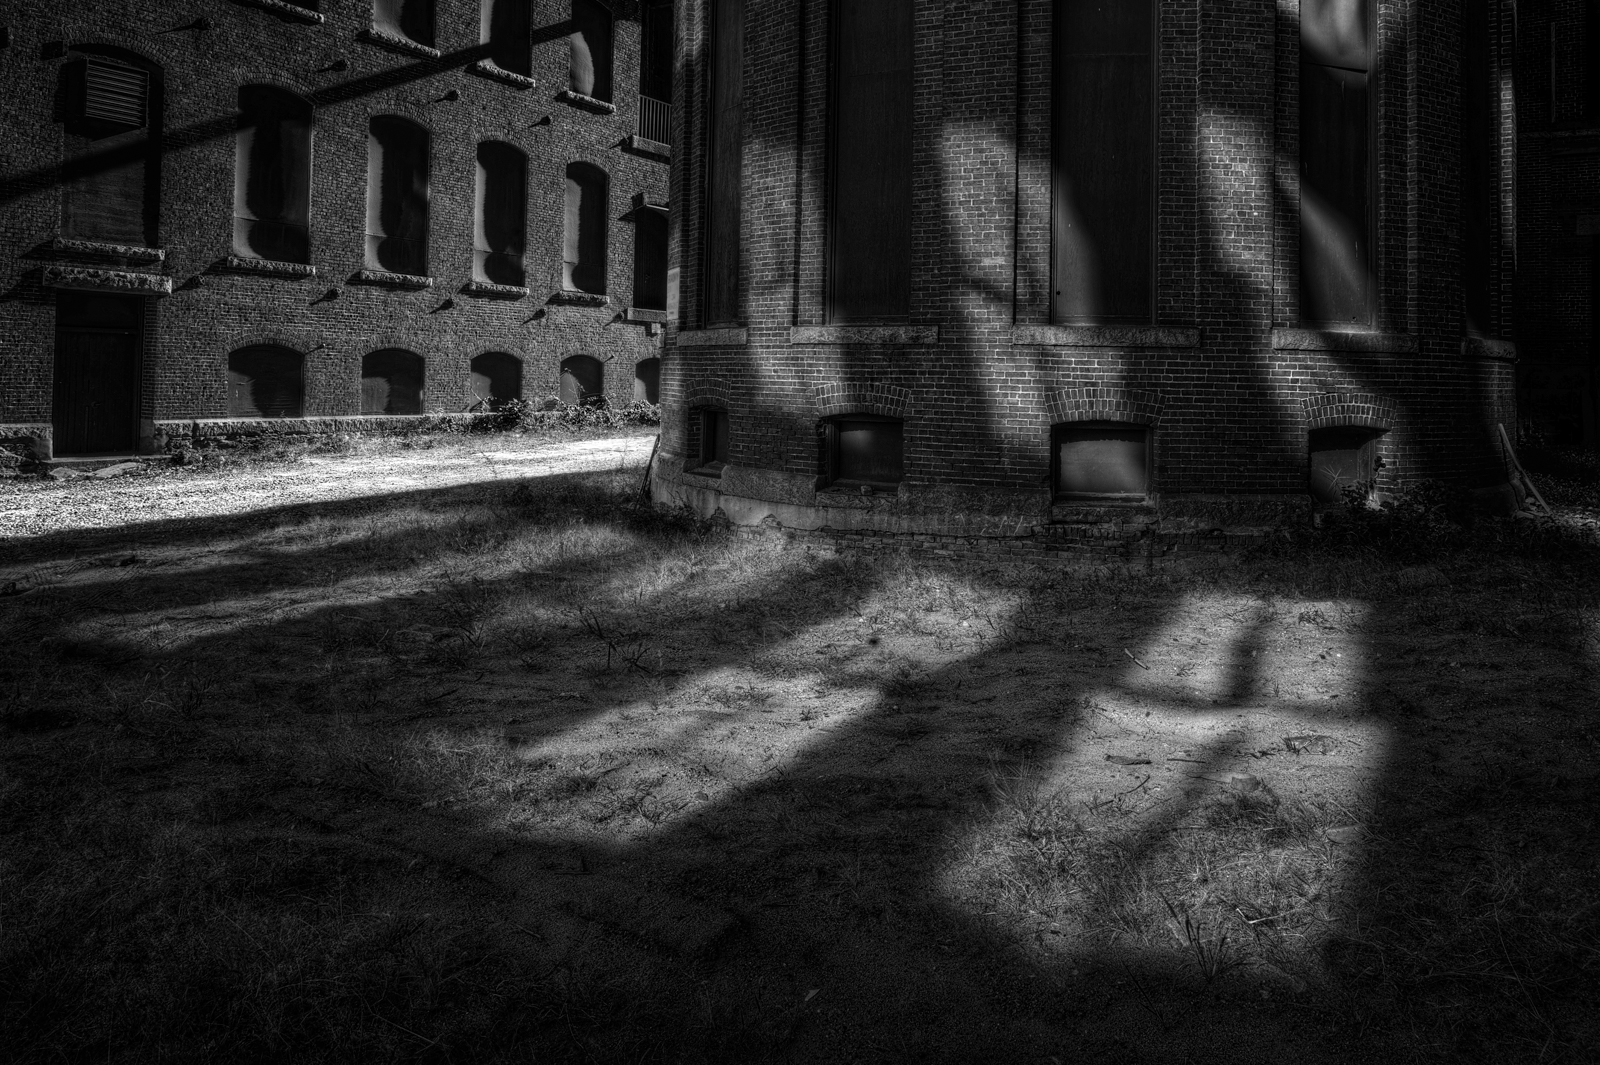 Arlington Mill: Light and Shadow